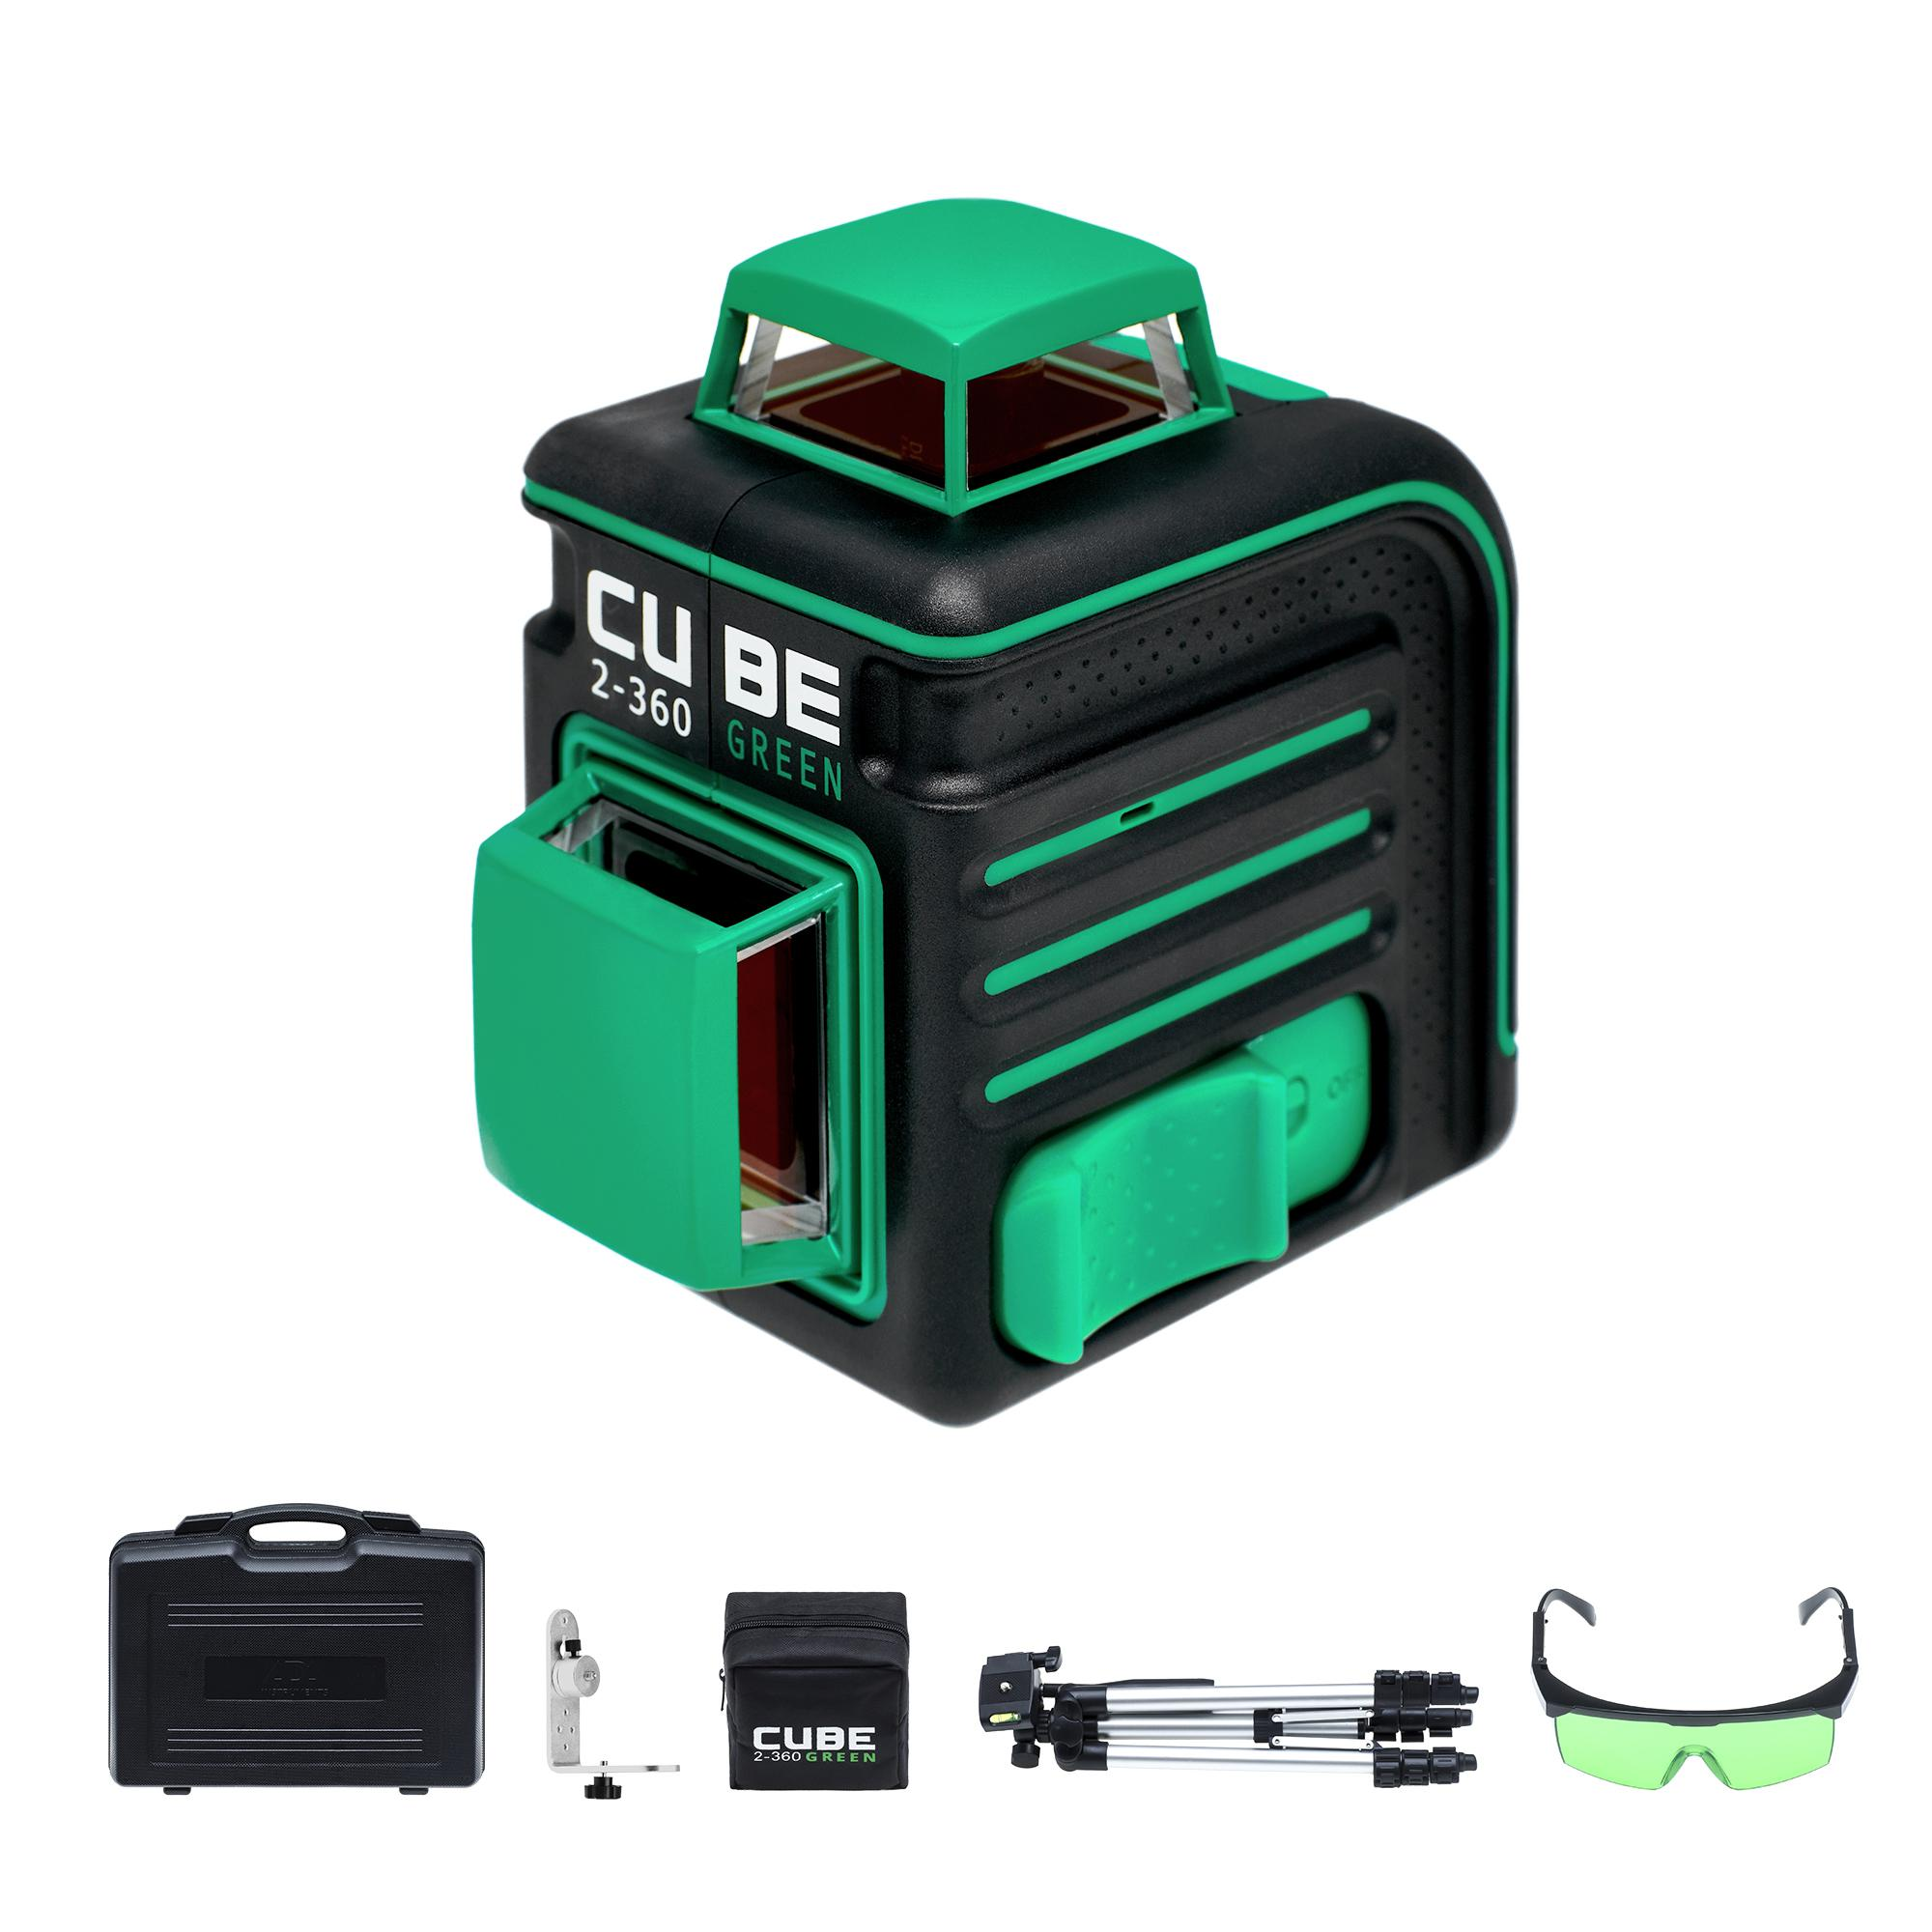 Уровень Ada Cube 2-360 green ultimate edition уровень ada cube 2 360 green ultimate edition